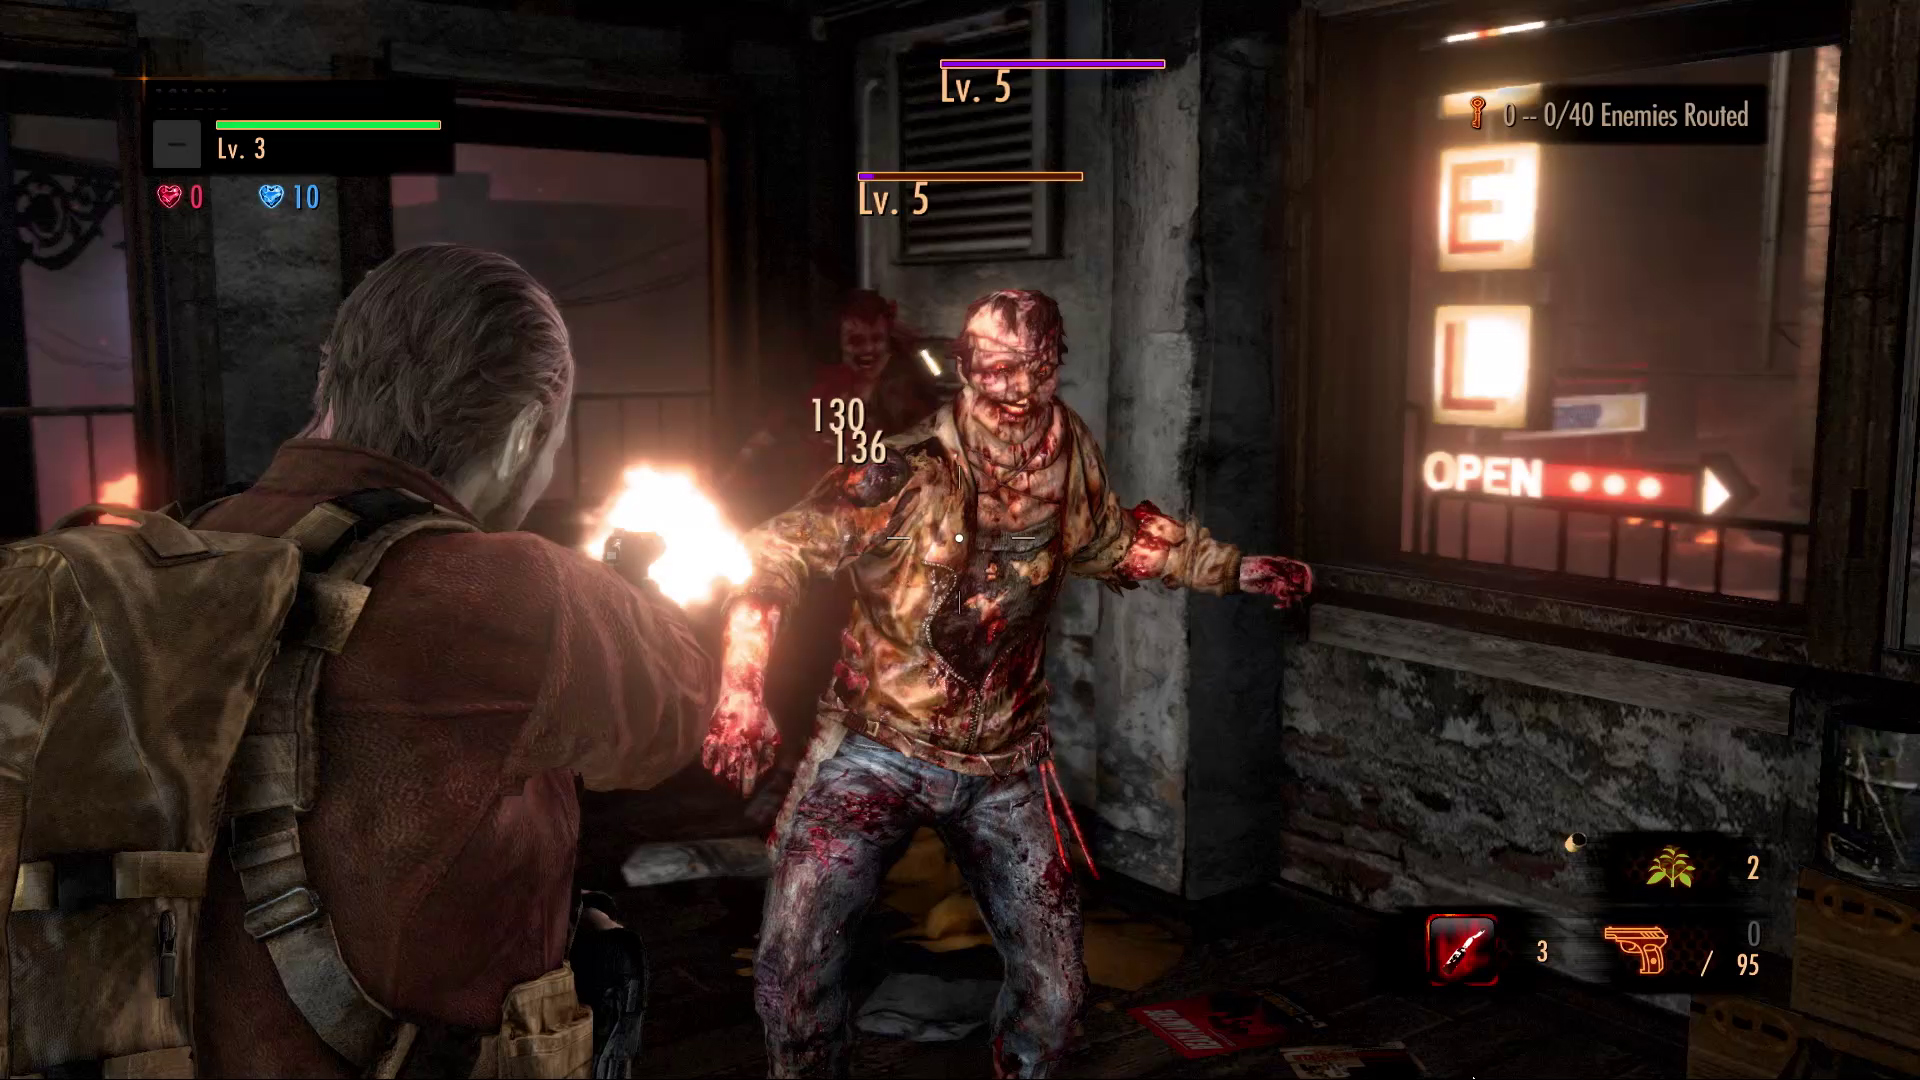 Yes, Resident Evil: Revelations 2 has microtransactions - VG247